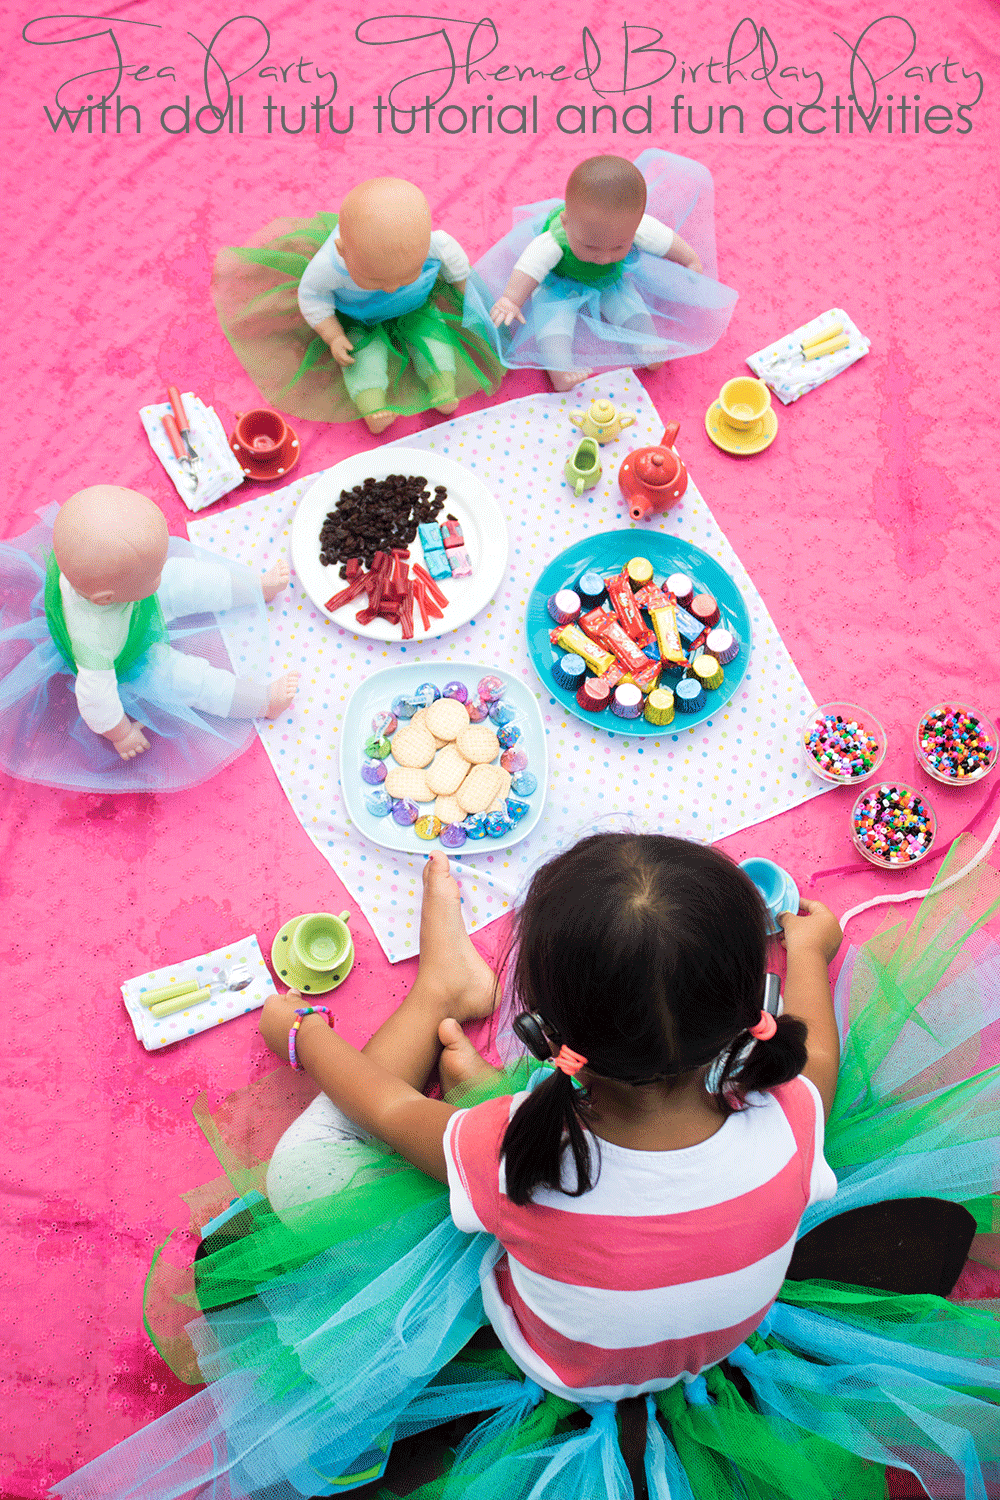 tea party themed birthday party and-doll-skirt-tutorial-and-other-fun-activities-from-nap-time-creations-and-hershey